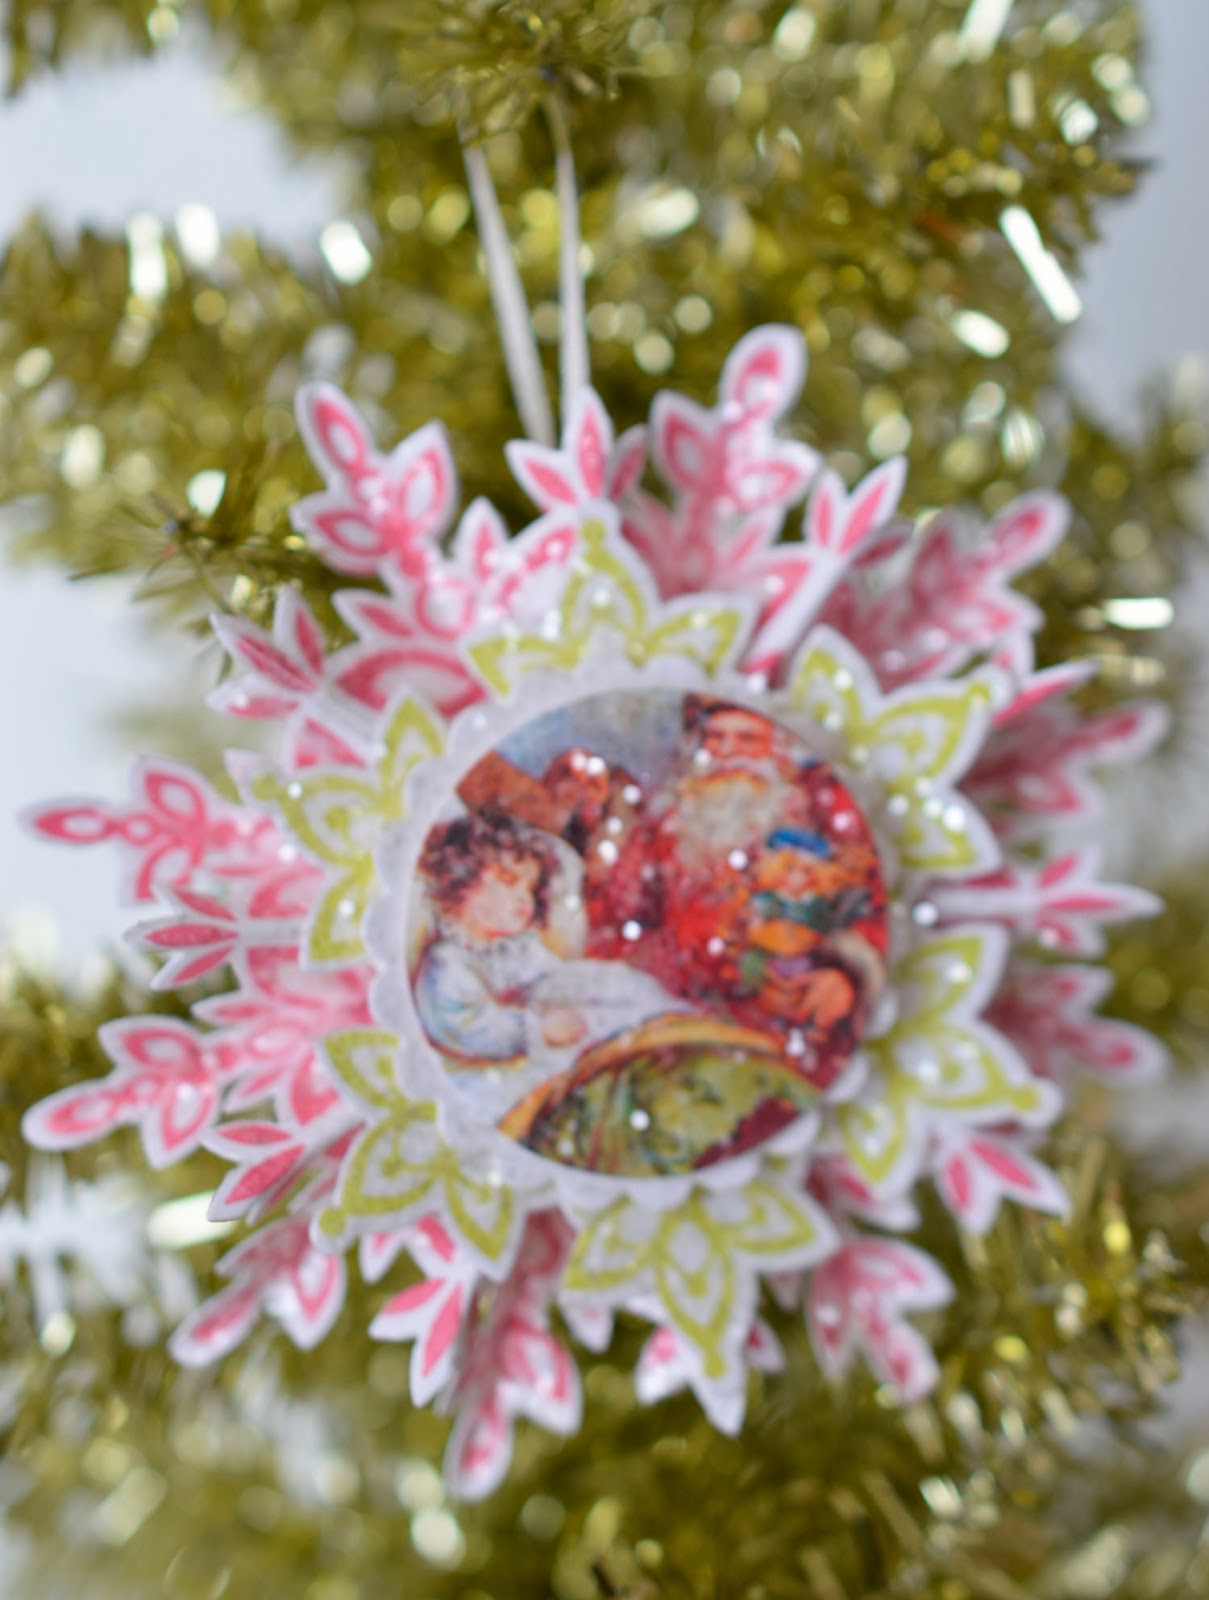 Make snowflake ornaments - To Make These Pretty Glittery Snowflake Ornaments I Ve Used Stampin Up Festive Flurry Snowflake Stamps And Framelits You Can Get A Bundle Of The Festive